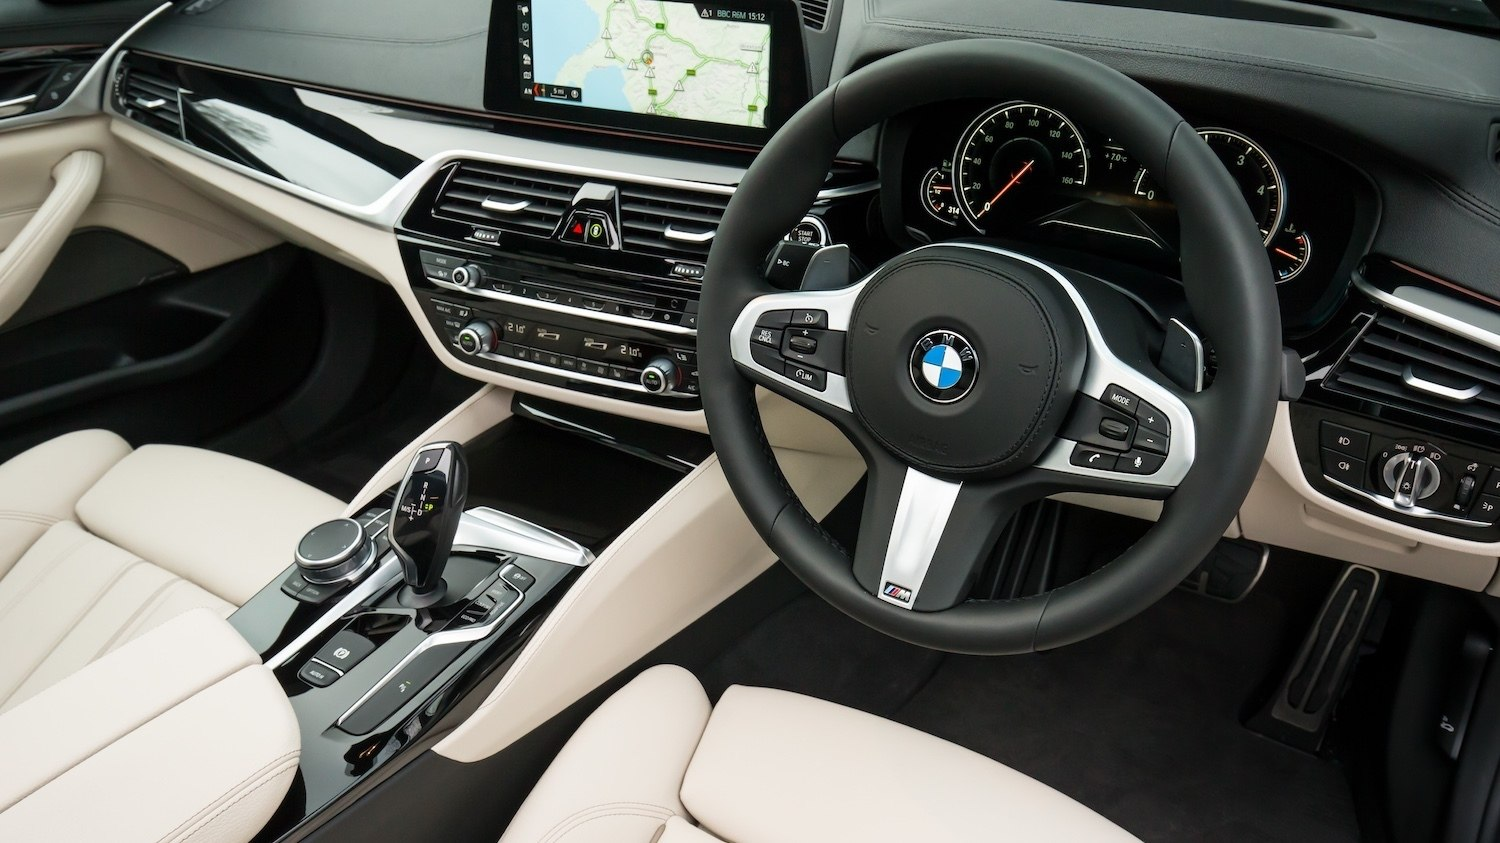 BMW 530d M Sport reviewed by Tom Scanlan for Drive 22